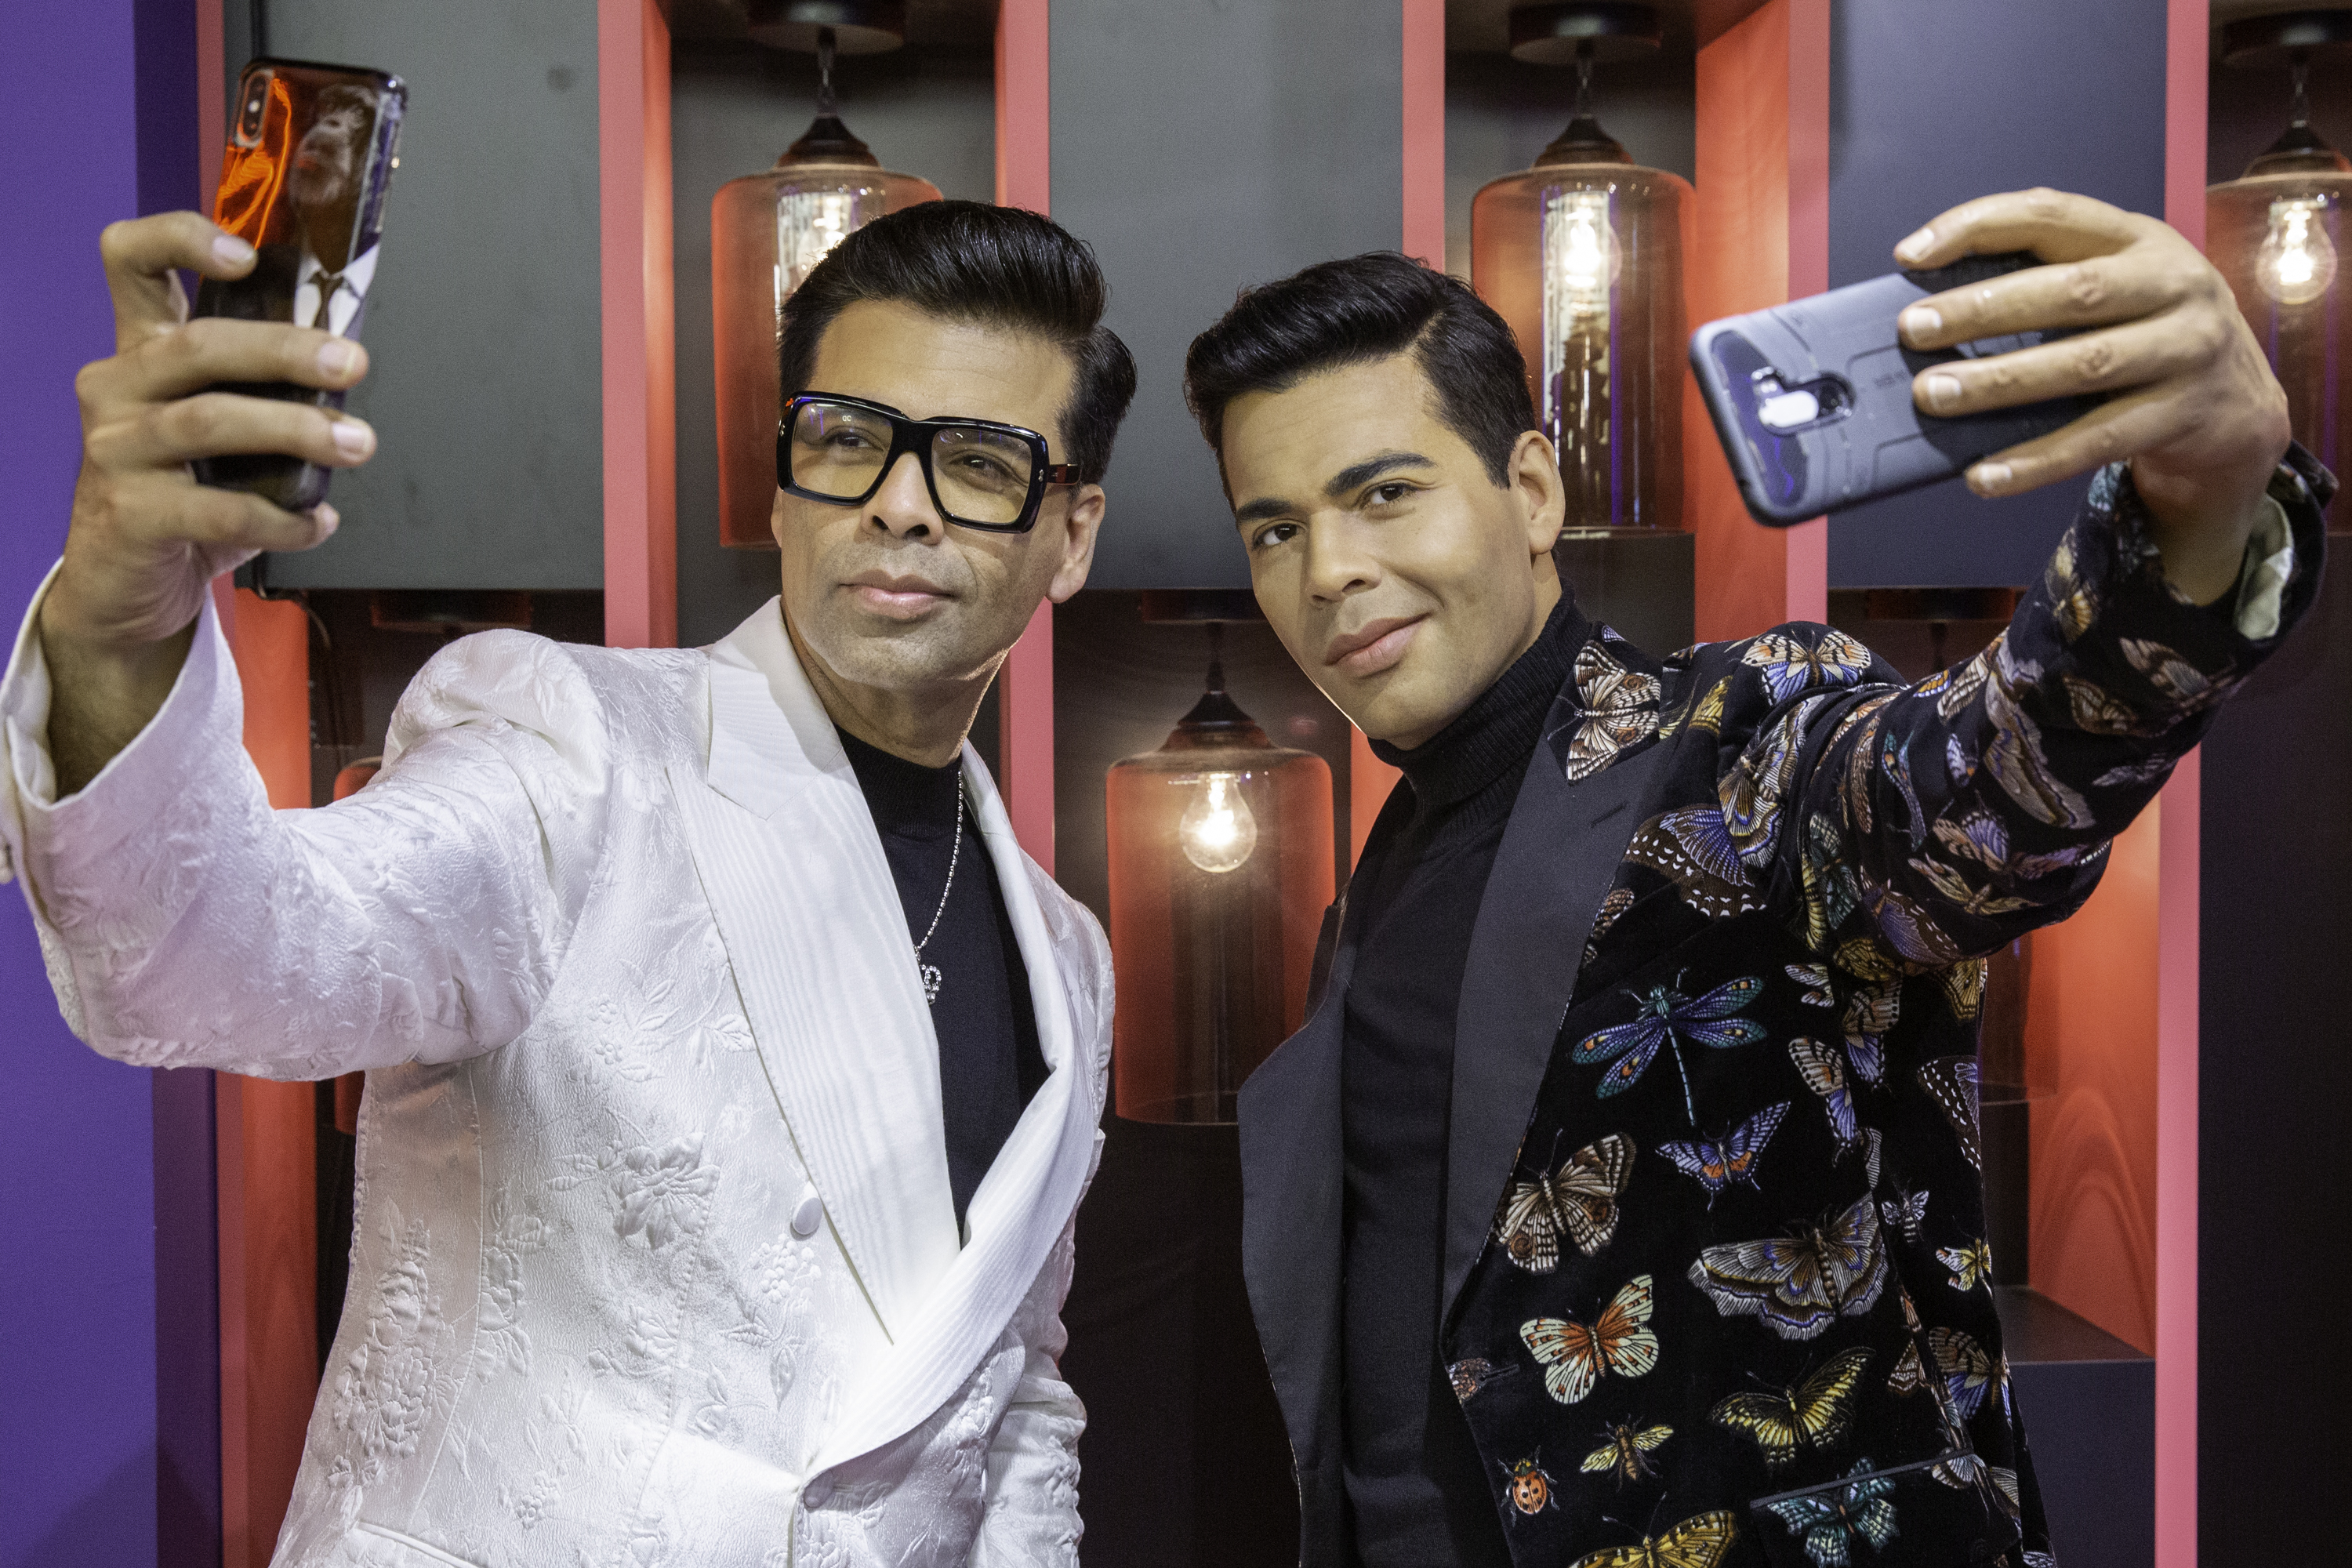 Karan Johar posing with his wax statue, which is a star attraction in multiple scenarios of the Bollywood Experience at Madame Tussauds Singapore. Photo courtesy: MAdame Tussauds